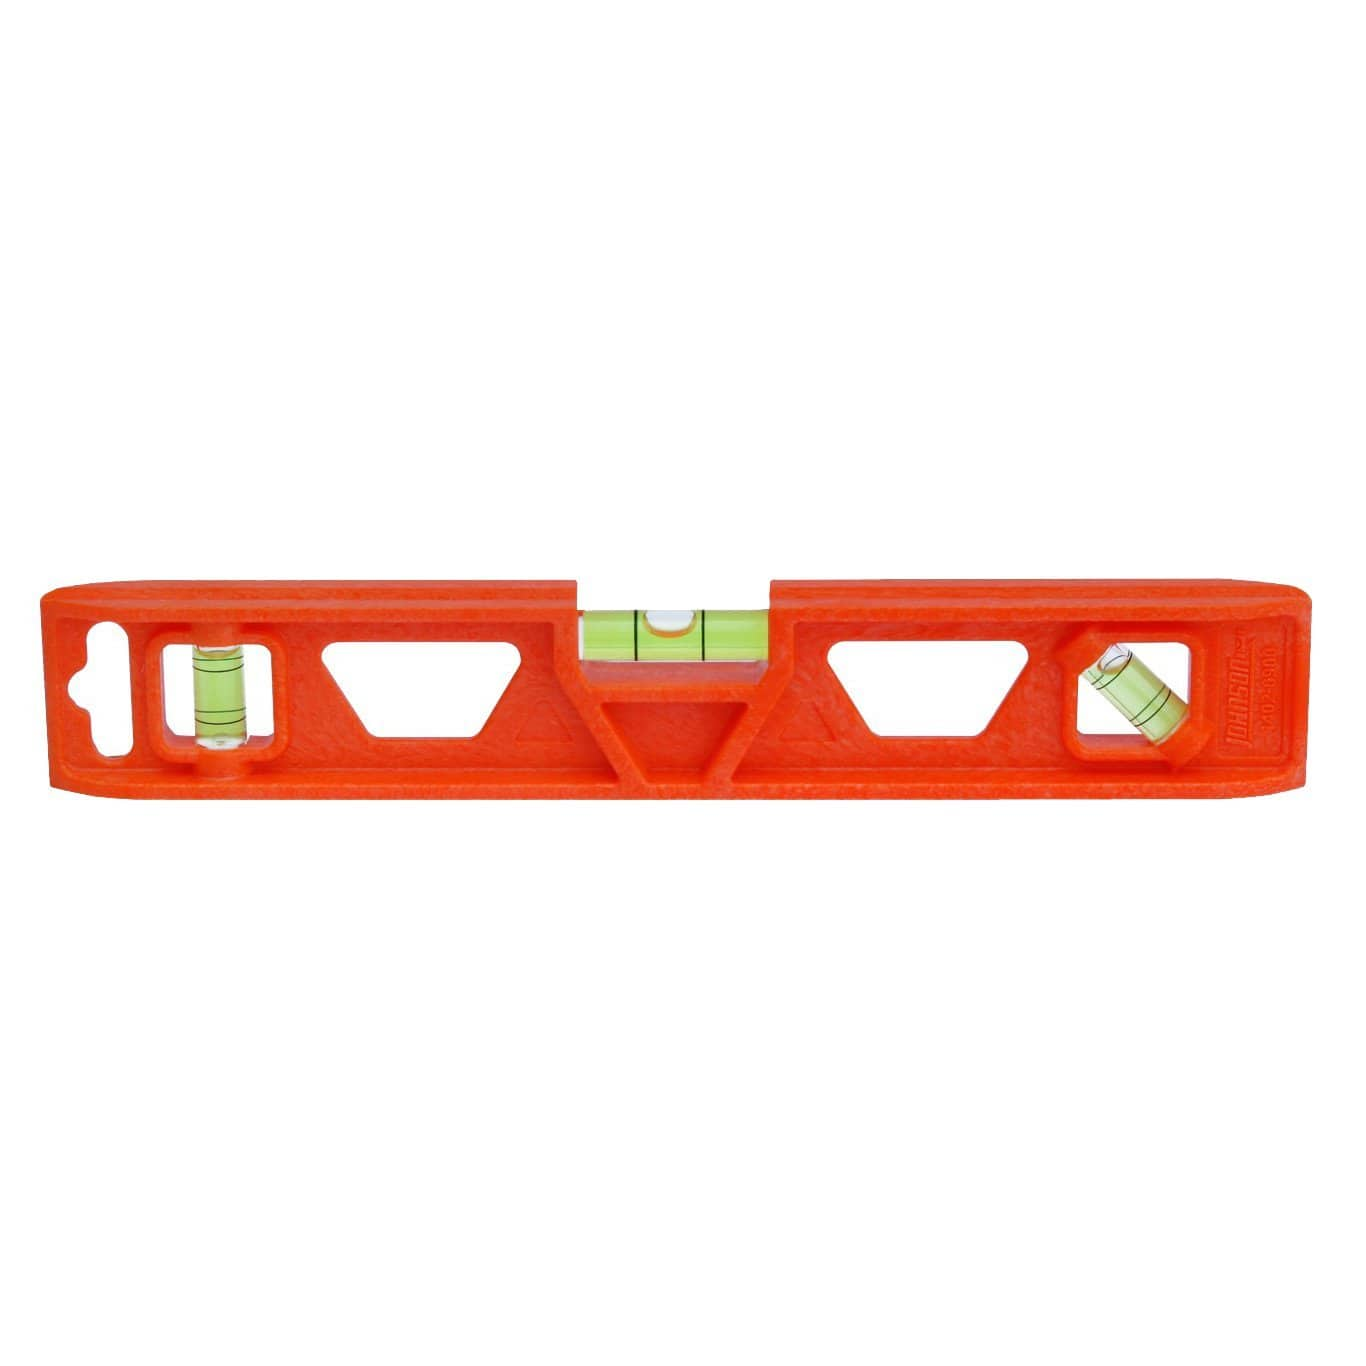 "Johnson Level & Tool 9"" Torpedo Level (1402-0900) $2.19 + Free Shipping w/ Prime"